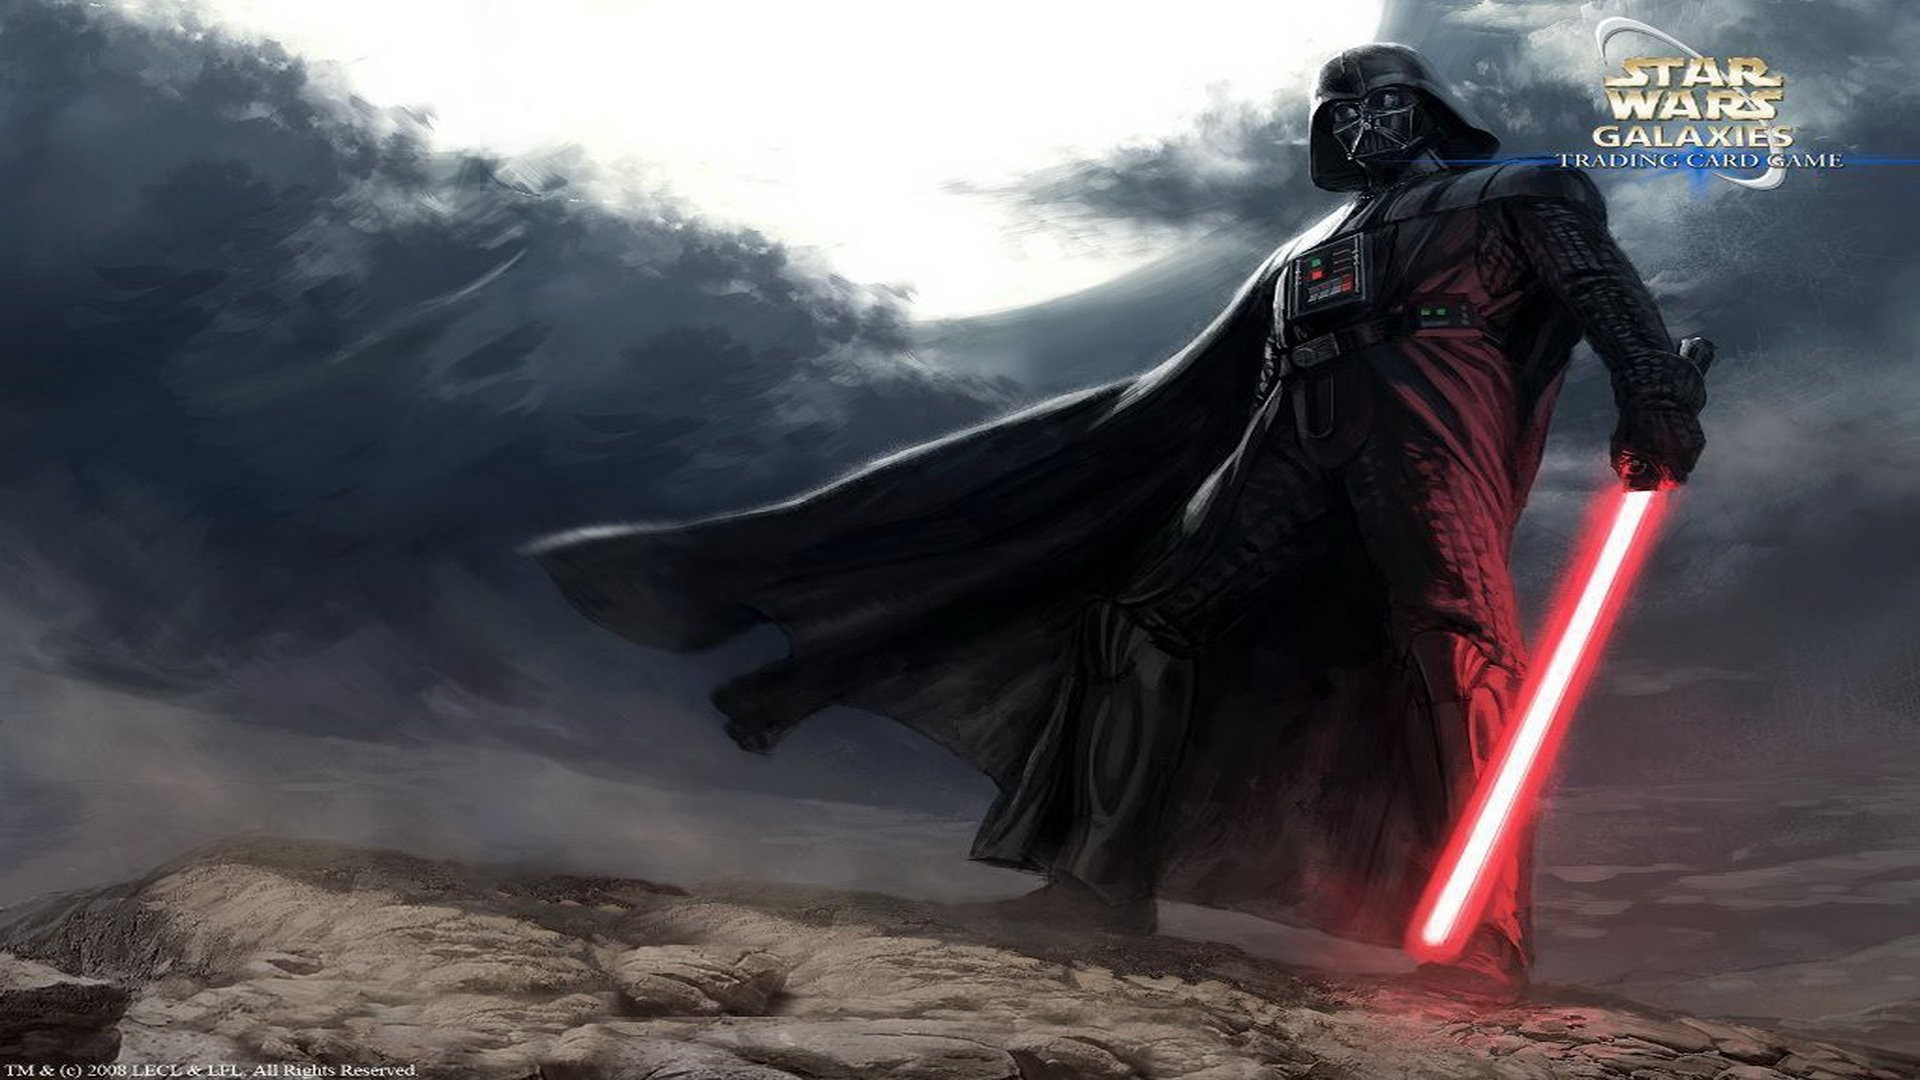 Darth Vader Wallpaper Hd 1920x1080 Download Free Awesome